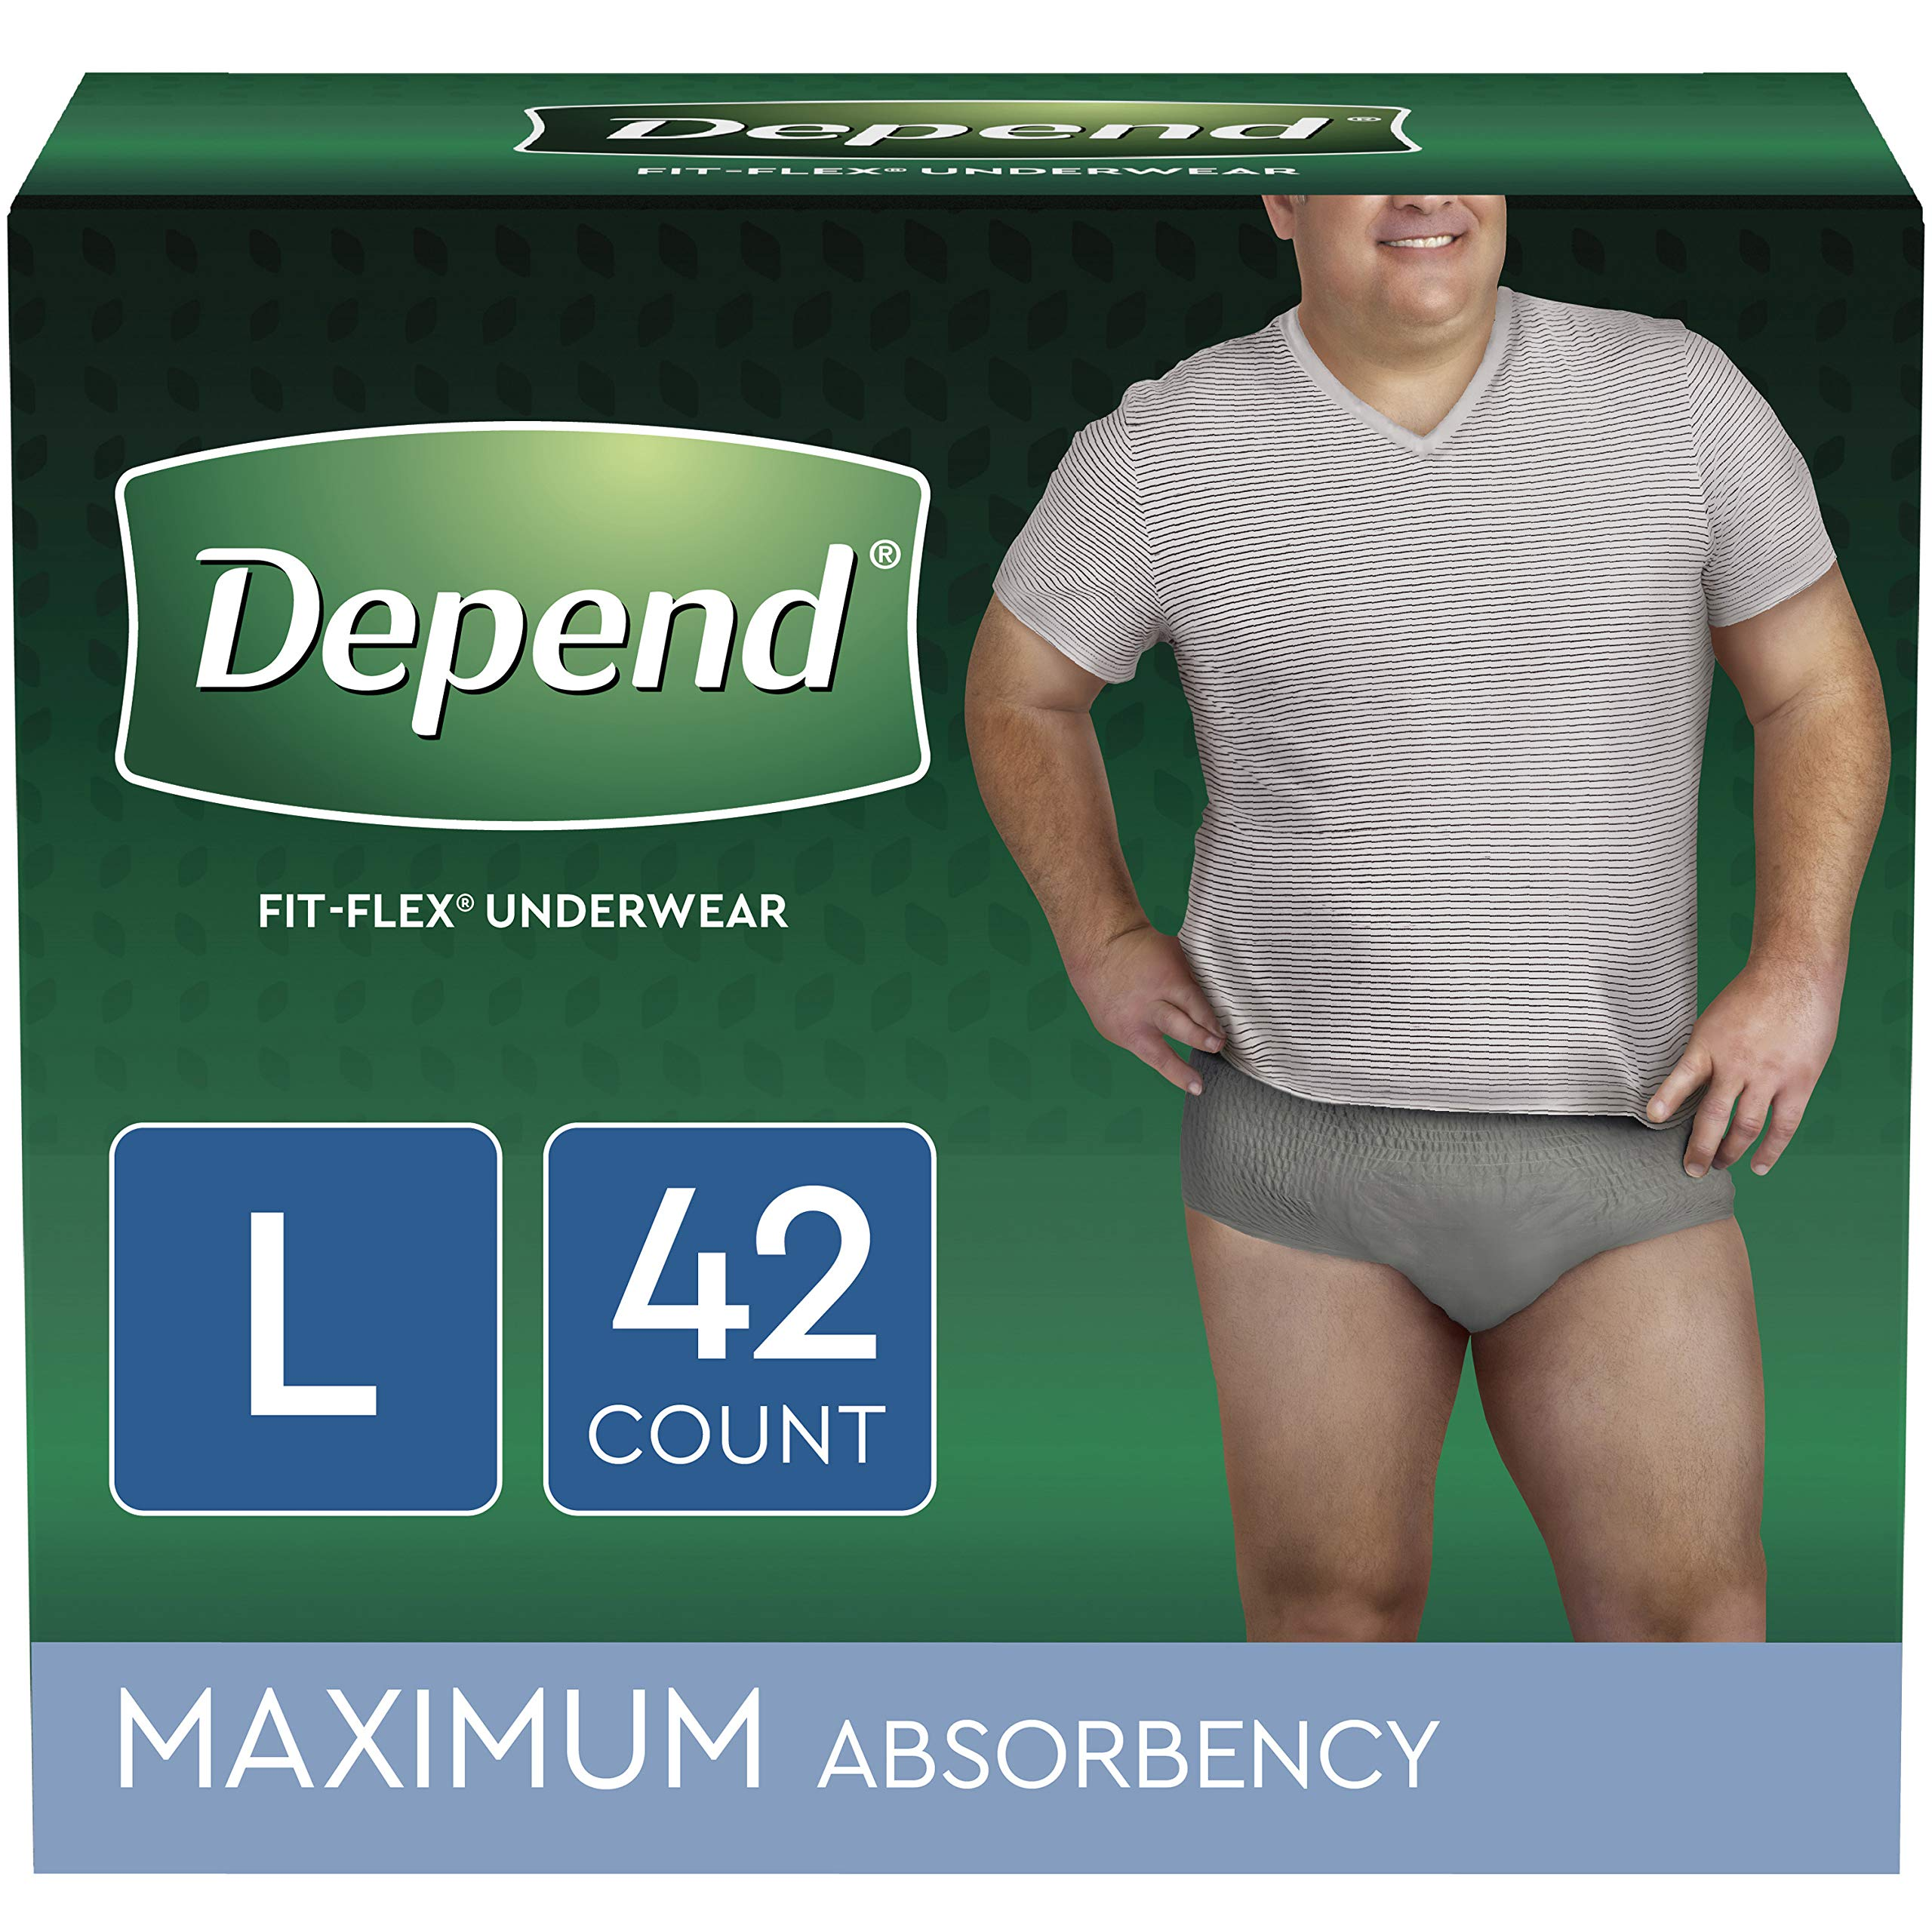 Depend FIT-FLEX Incontinence Underwear for Men, Maximum Absorbency, Disposable, L, Grey, 42 Count